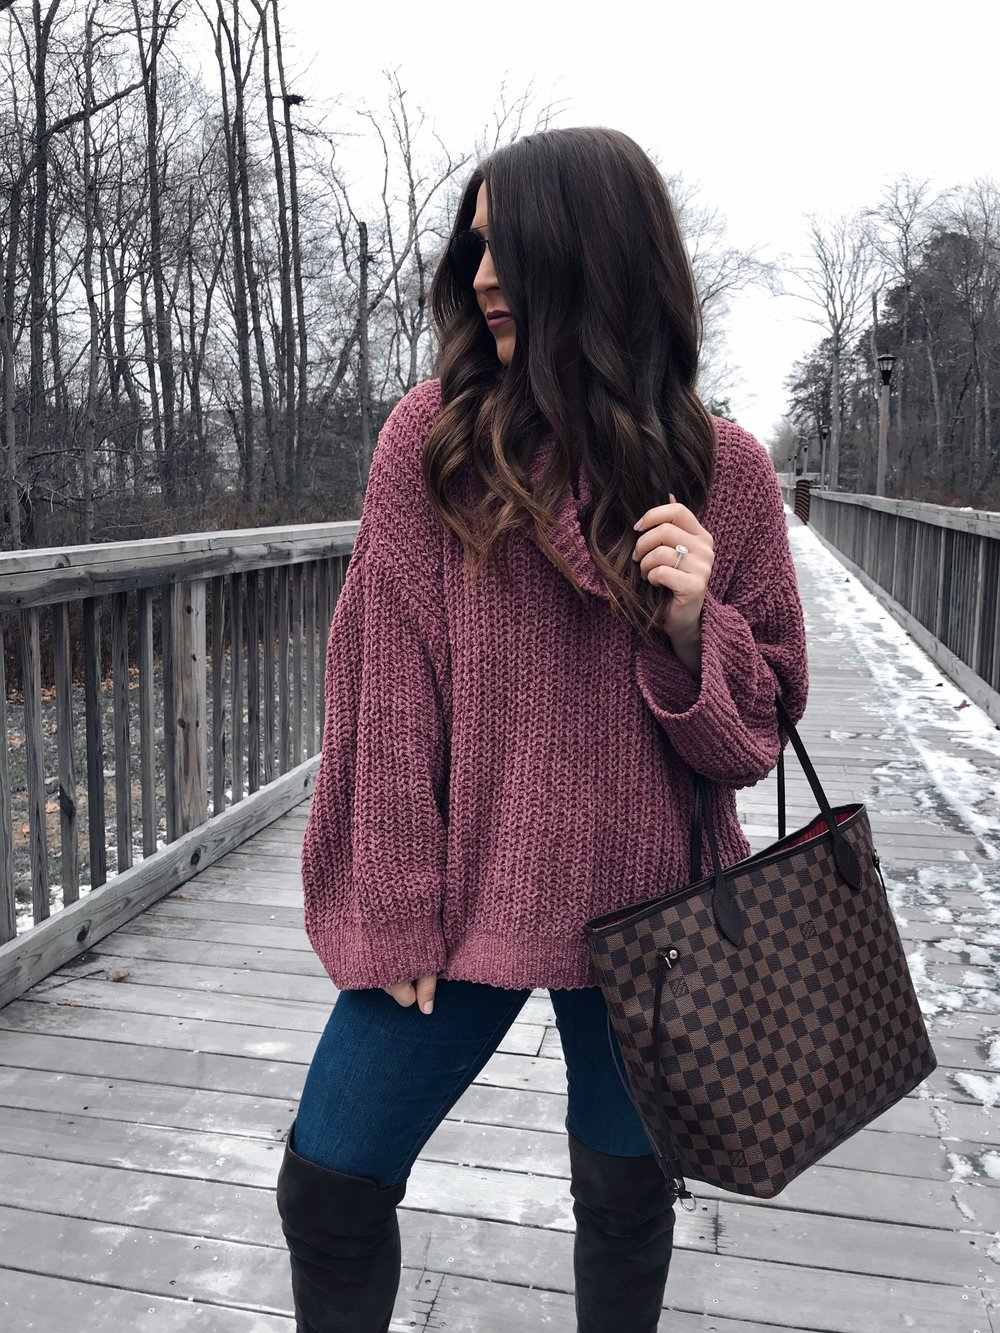 Weekend Sales + Free Shipping Day | Pine Barren Beauty | winter fashion, winter outfit idea, winter outfit inspiration, cozy sweater, sweater weather, express sale